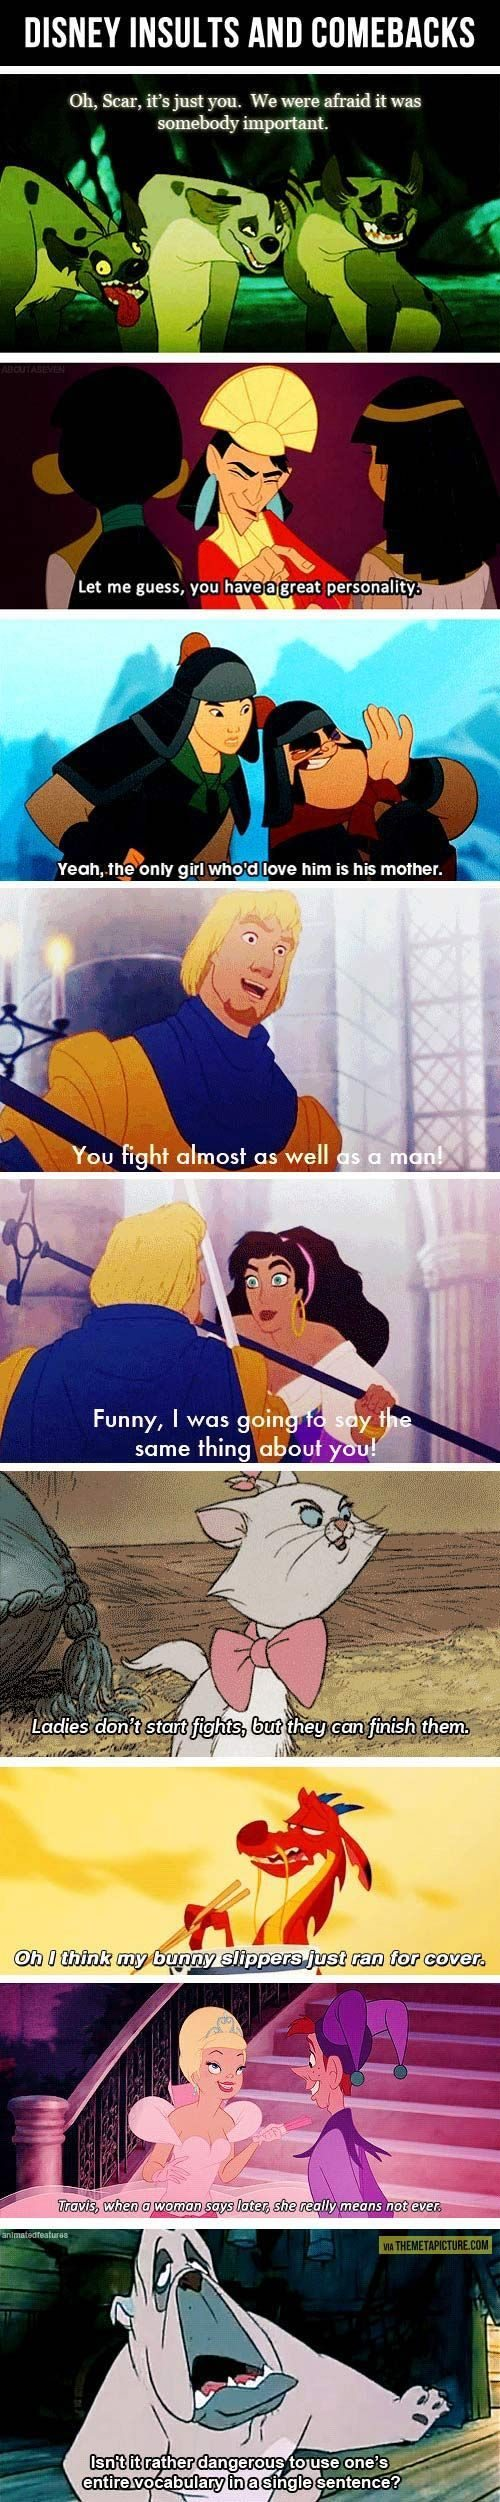 40 Disney Humor Quotes #Disney #Humor